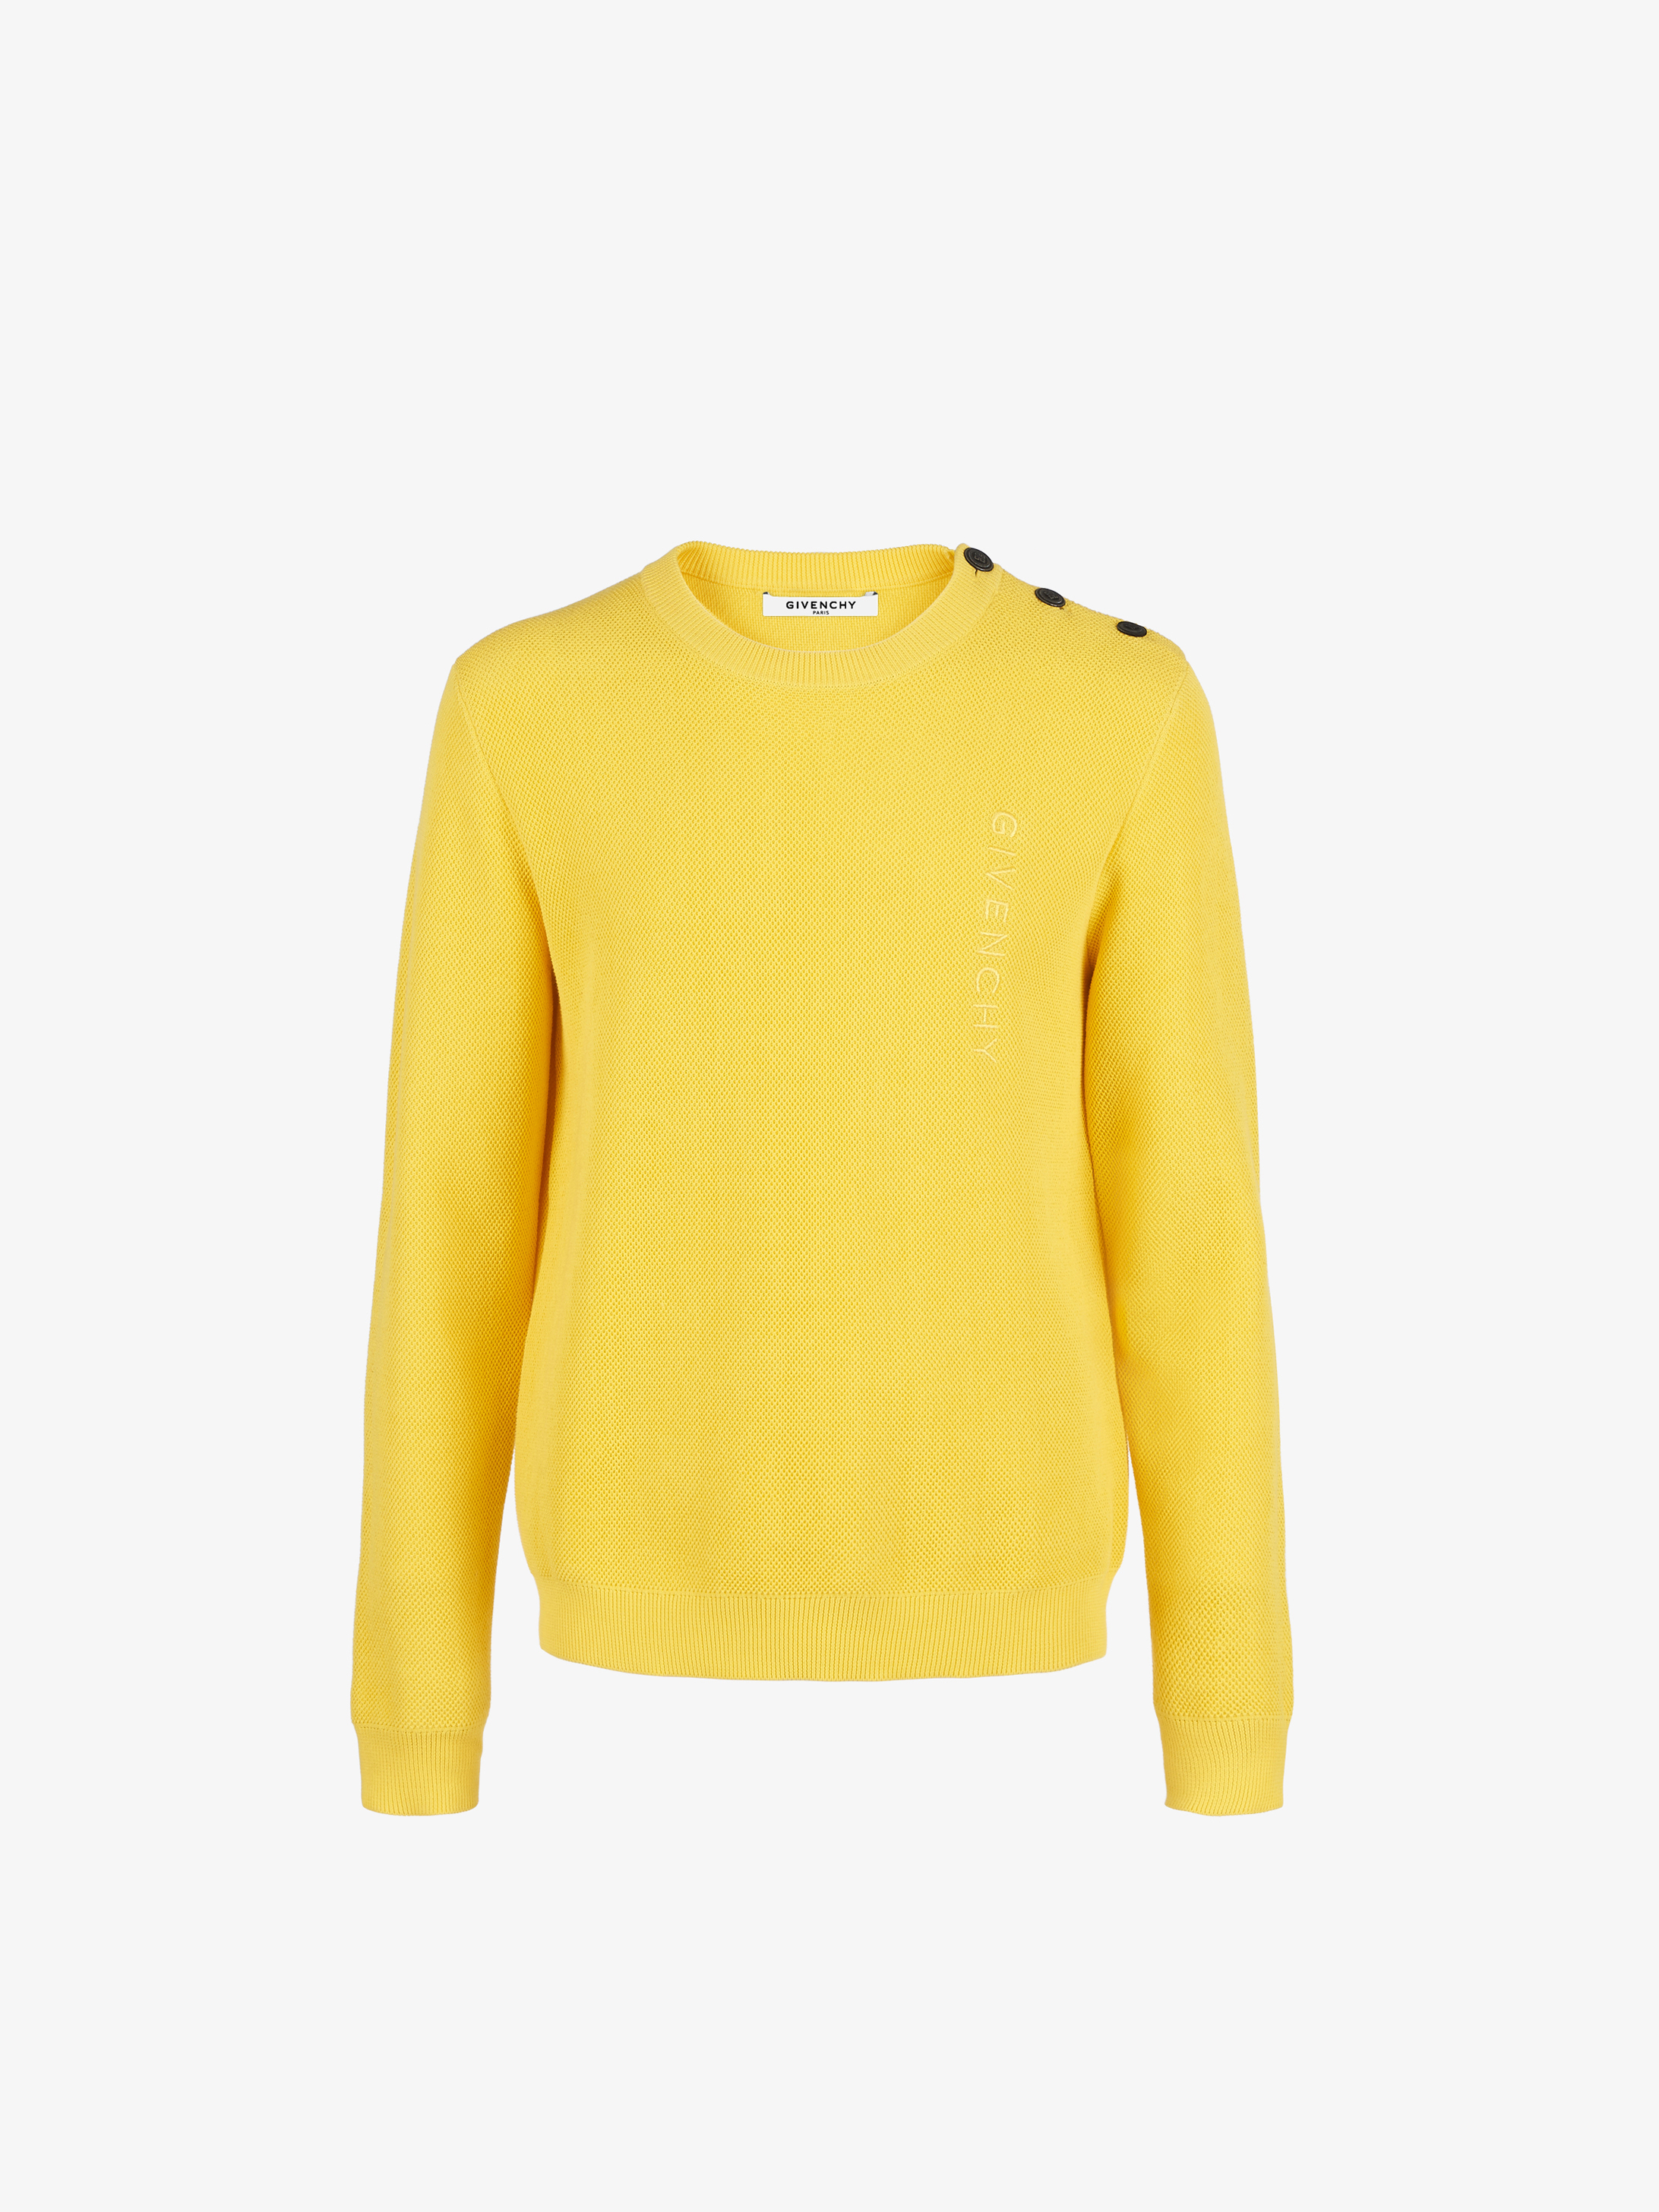 GIVENCHY sweater with 4G buttons